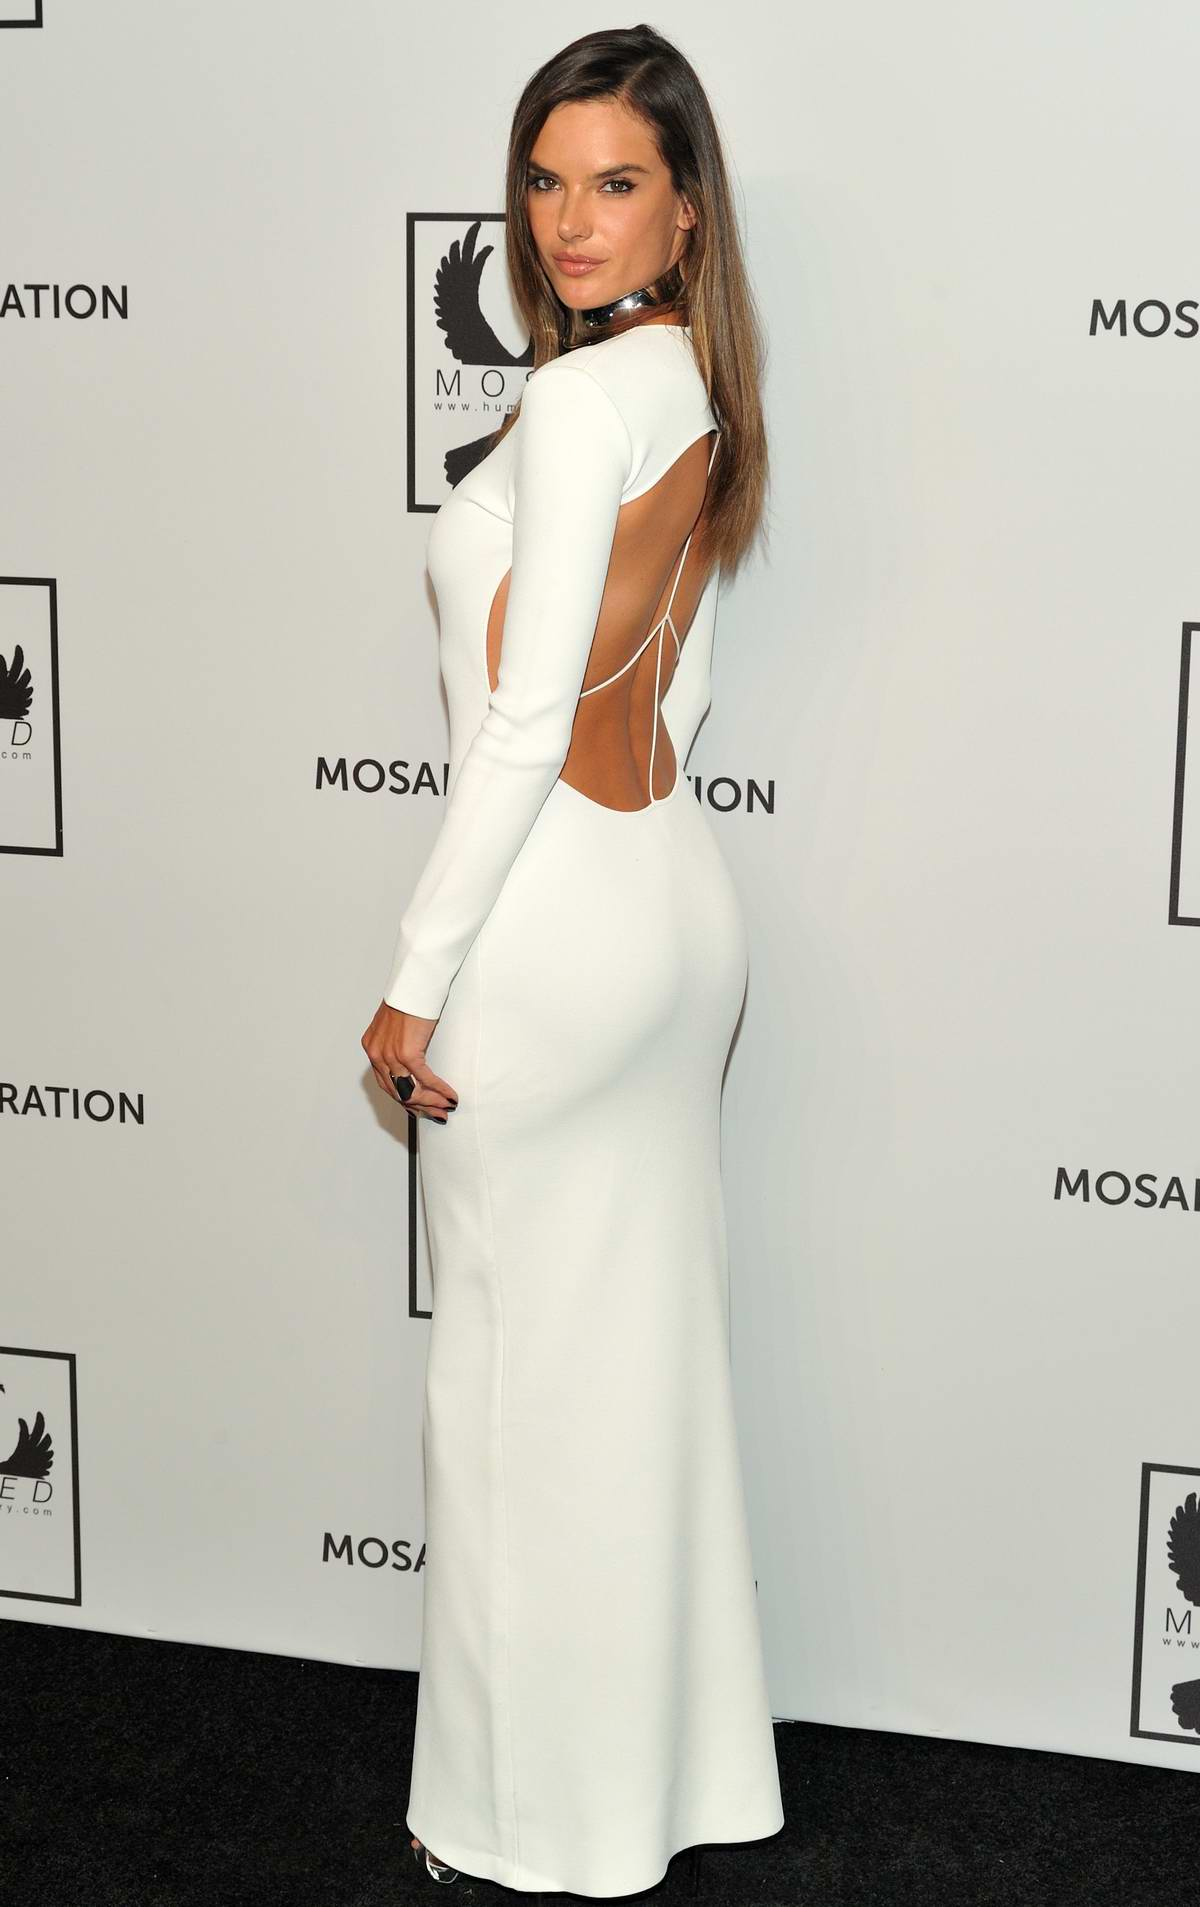 Alessandra Ambrosio attends the Mosaic Hederation Gala Against Human Slavery at Cipriani 42 in New York City